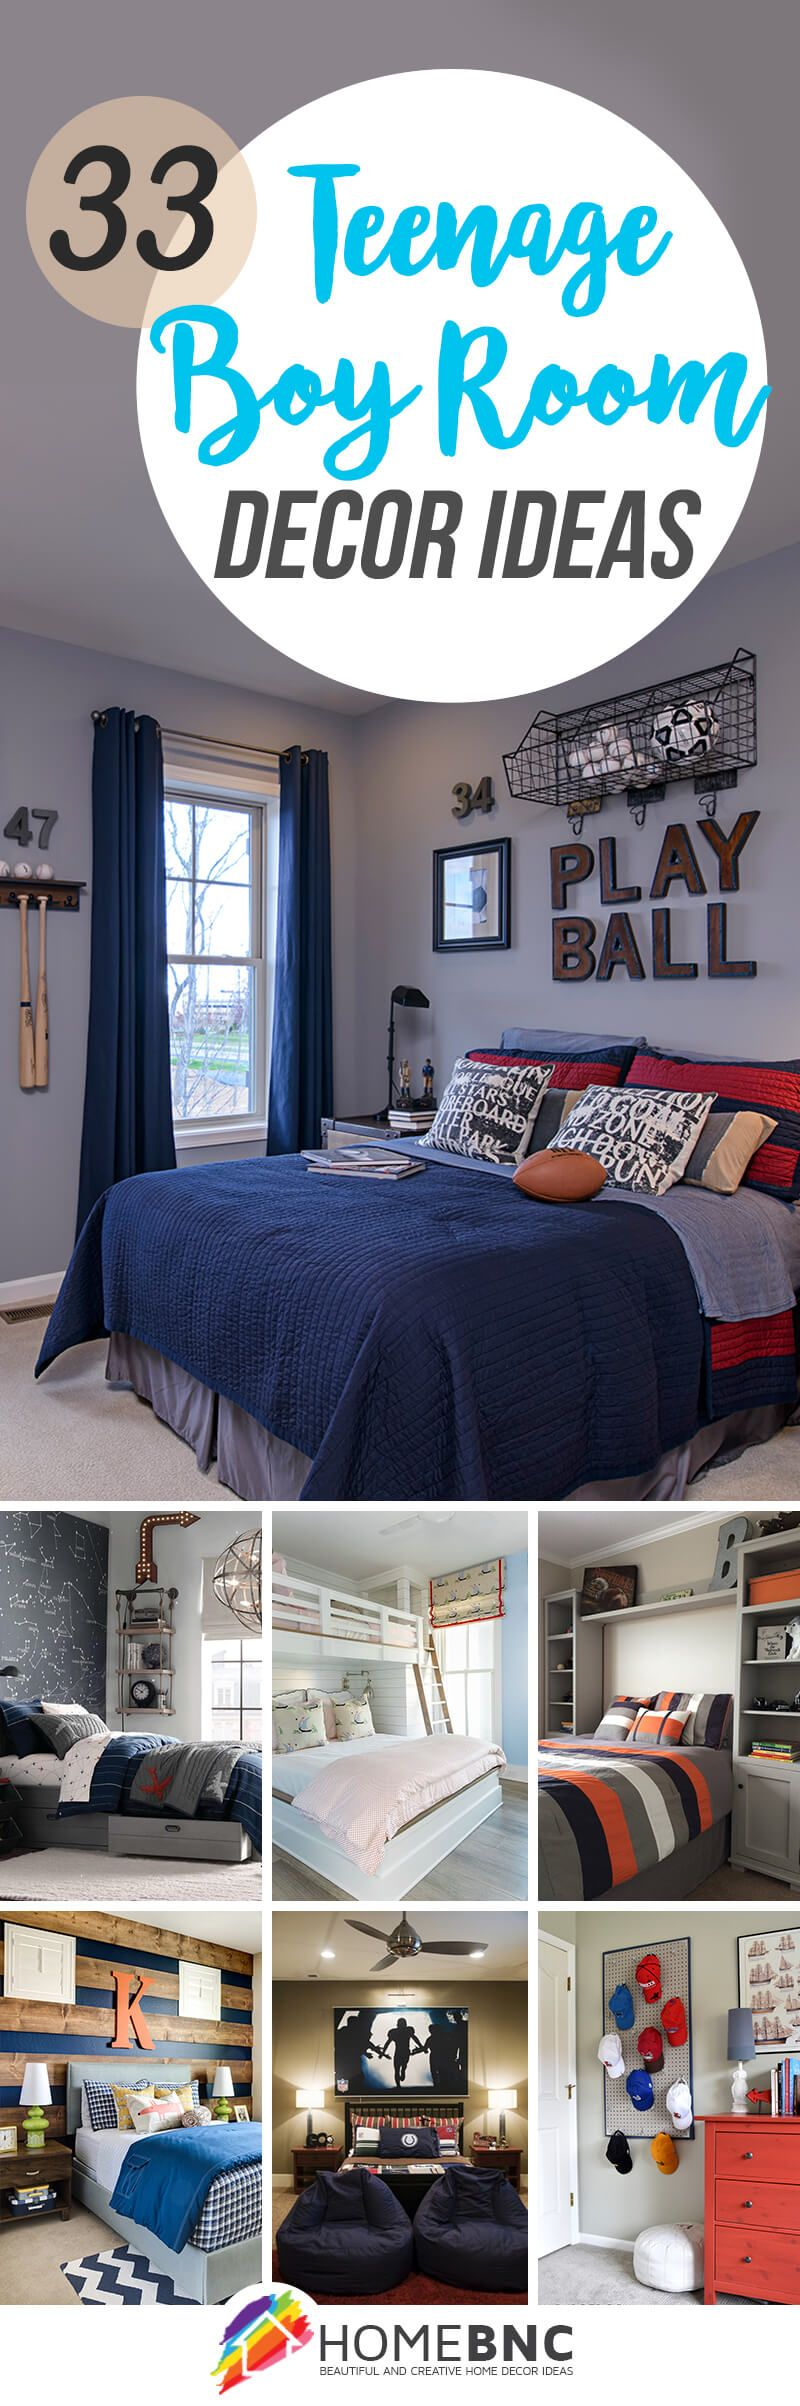 33 Cool Teenage Boy Room Decor Ideas Teenage Boy Room Boys Room